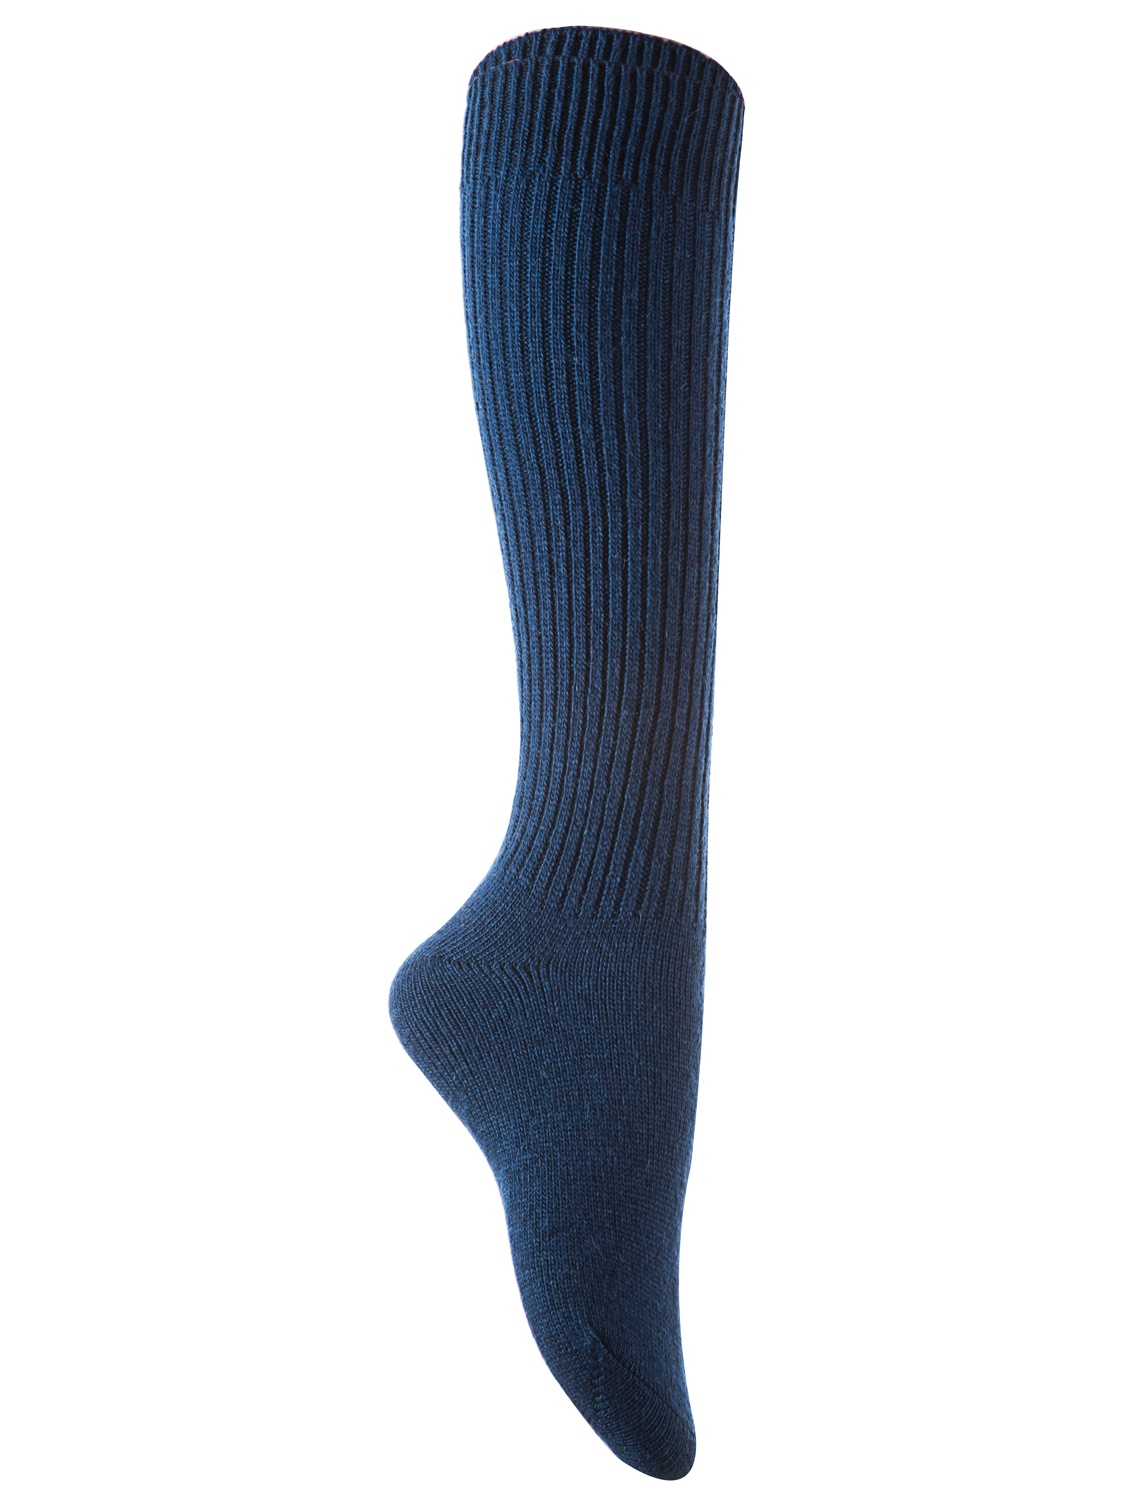 Lian Style Big Girl's 1 Pair Knee-high Knitted Wool Socks stripped FS05 Size XL(Green)